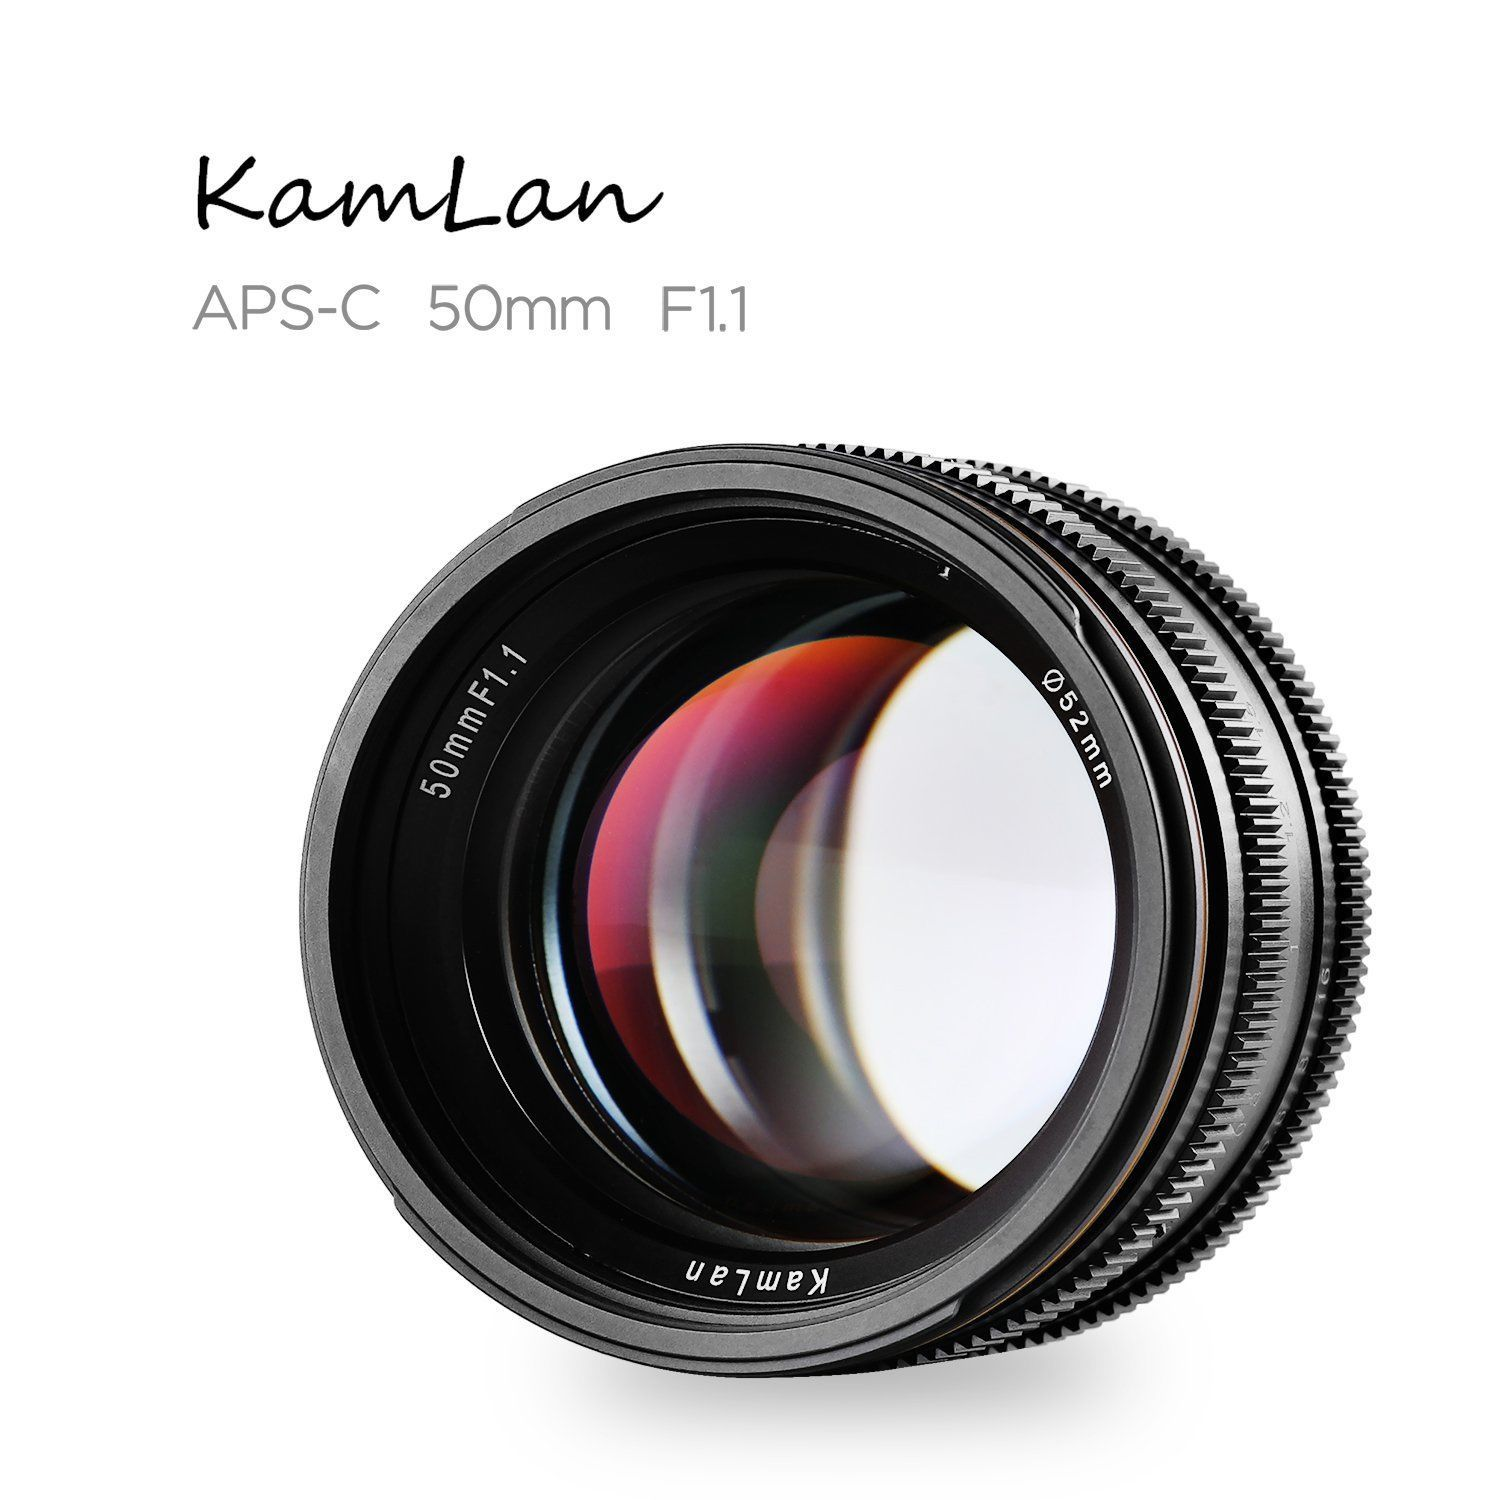 50mm F1.1 APS-C Large Aperture Manual Focus Lens for Canon Mirrorless Camera Lens for Sony Nex E Mount with Lens Hood image